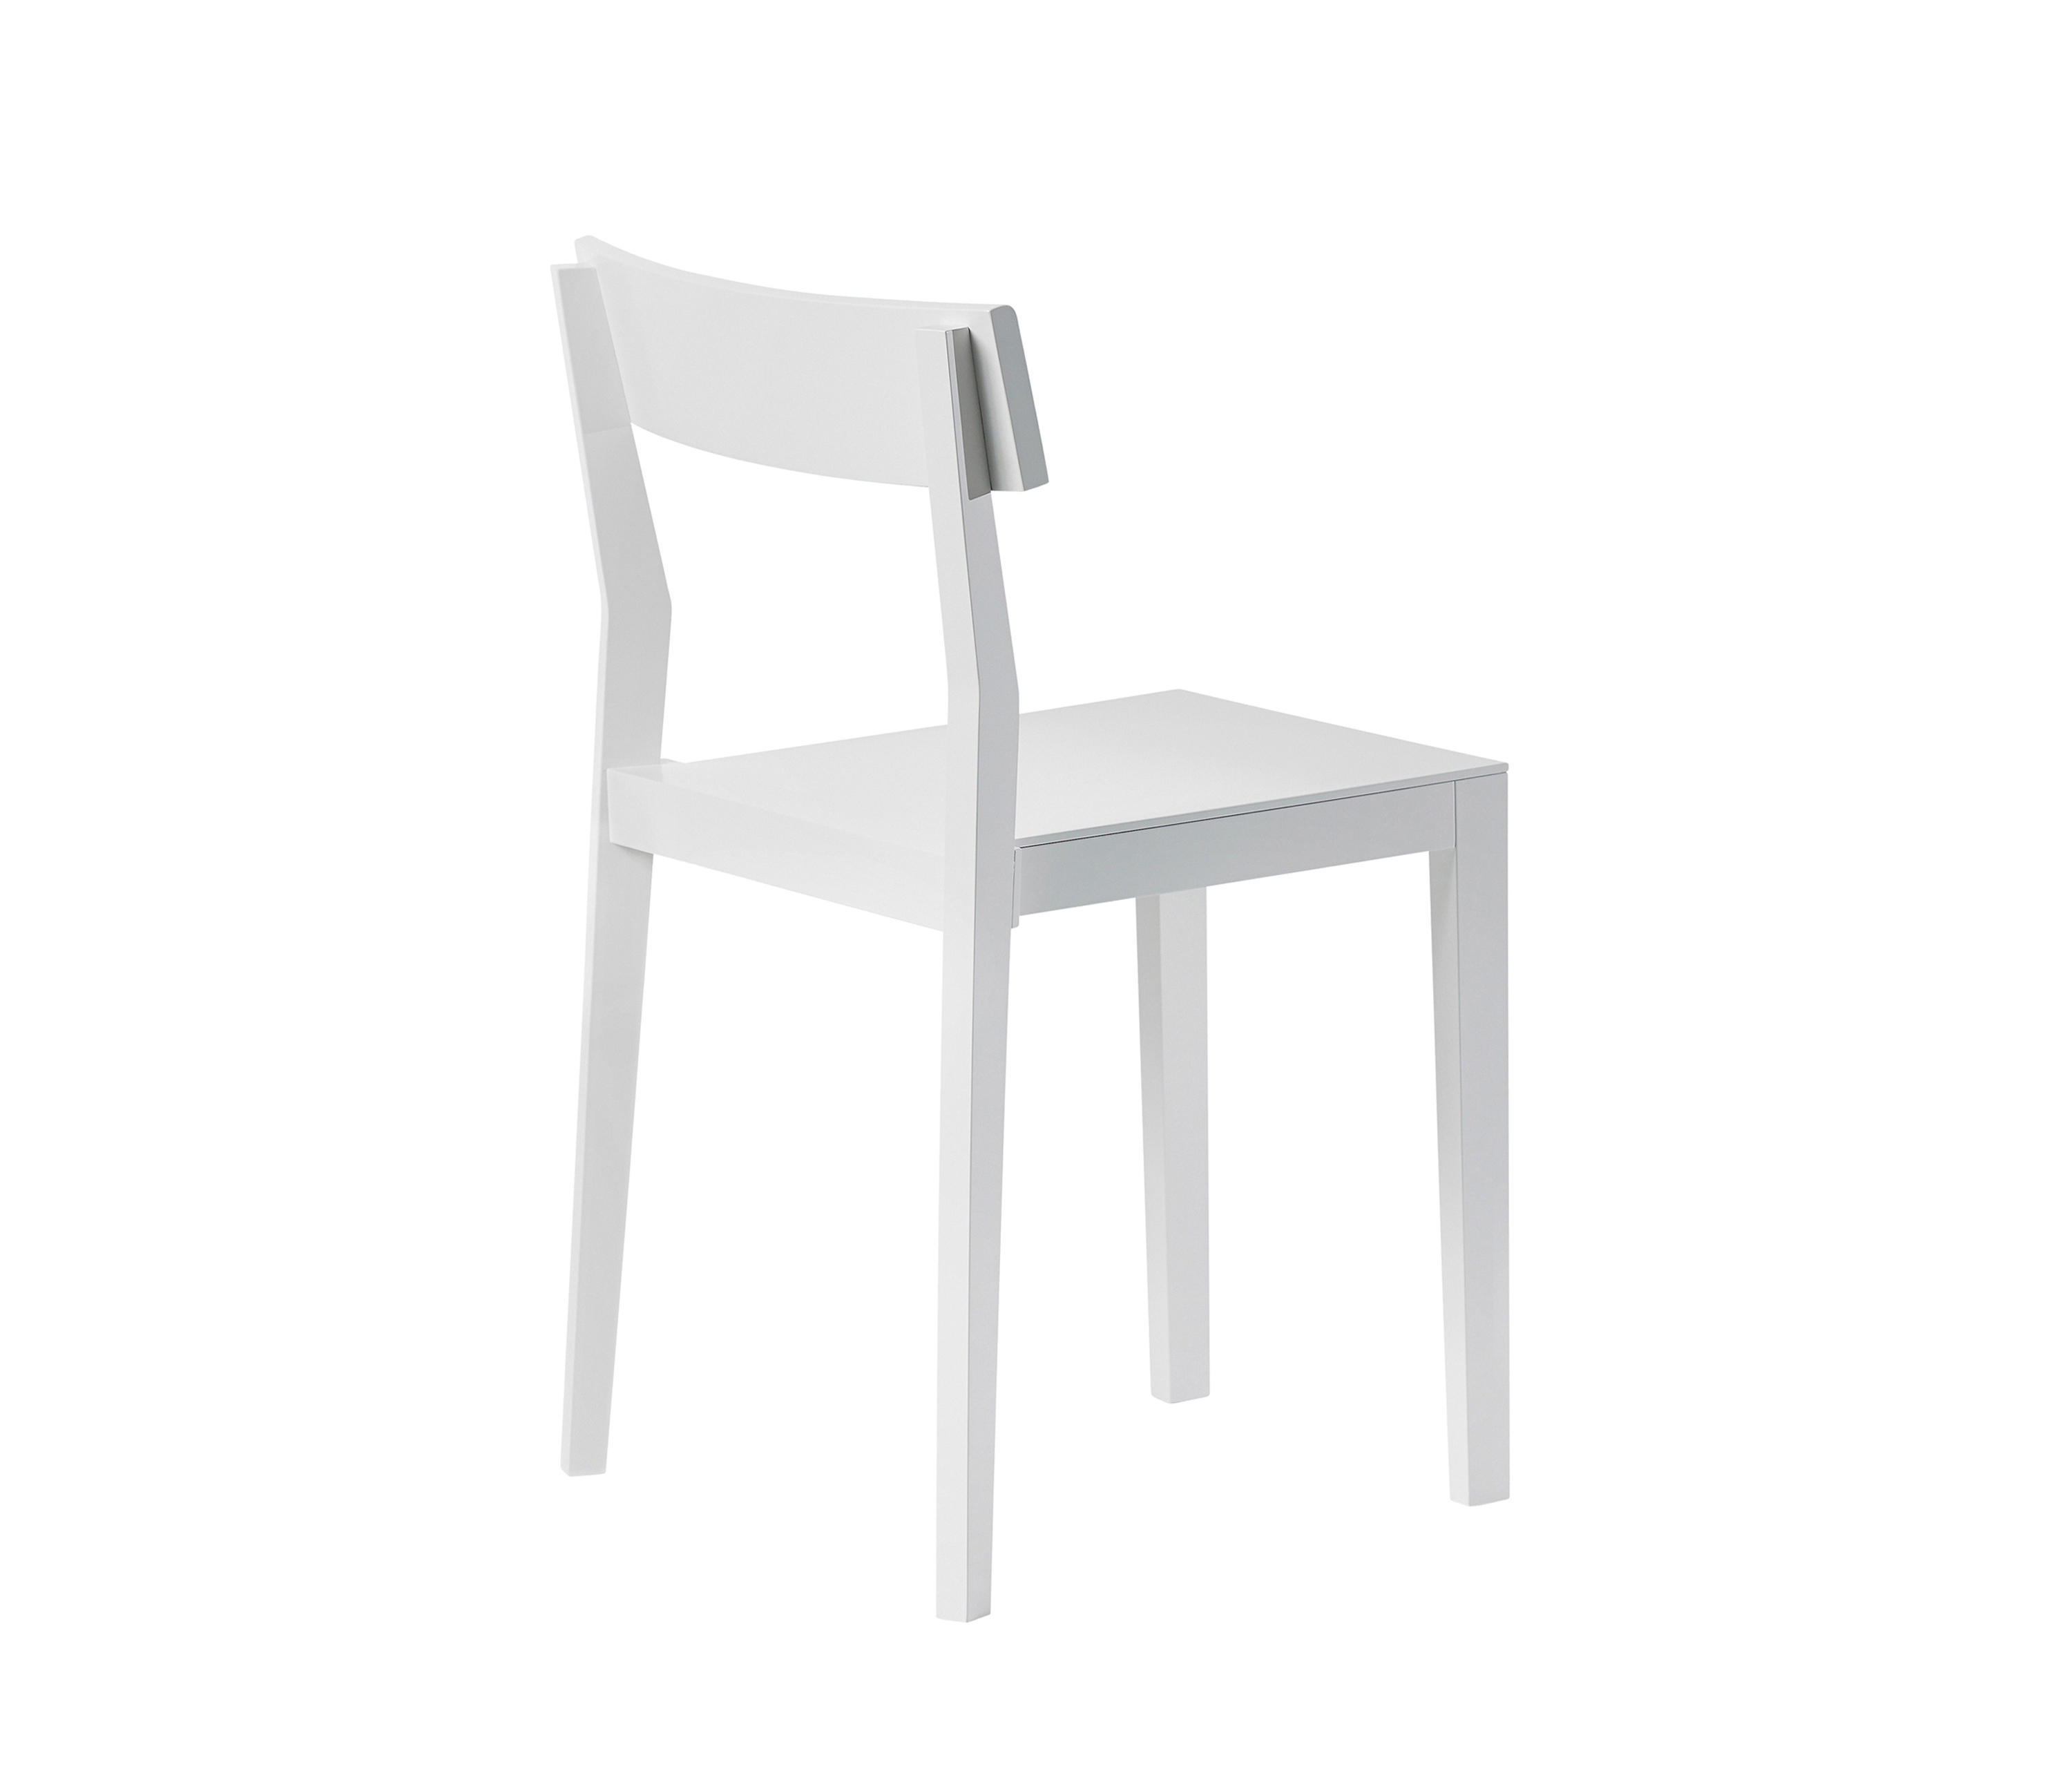 ... Hello Chair by A2 designers AB | Chairs  sc 1 st  Architonic & HELLO CHAIR - Chairs from A2 designers AB | Architonic